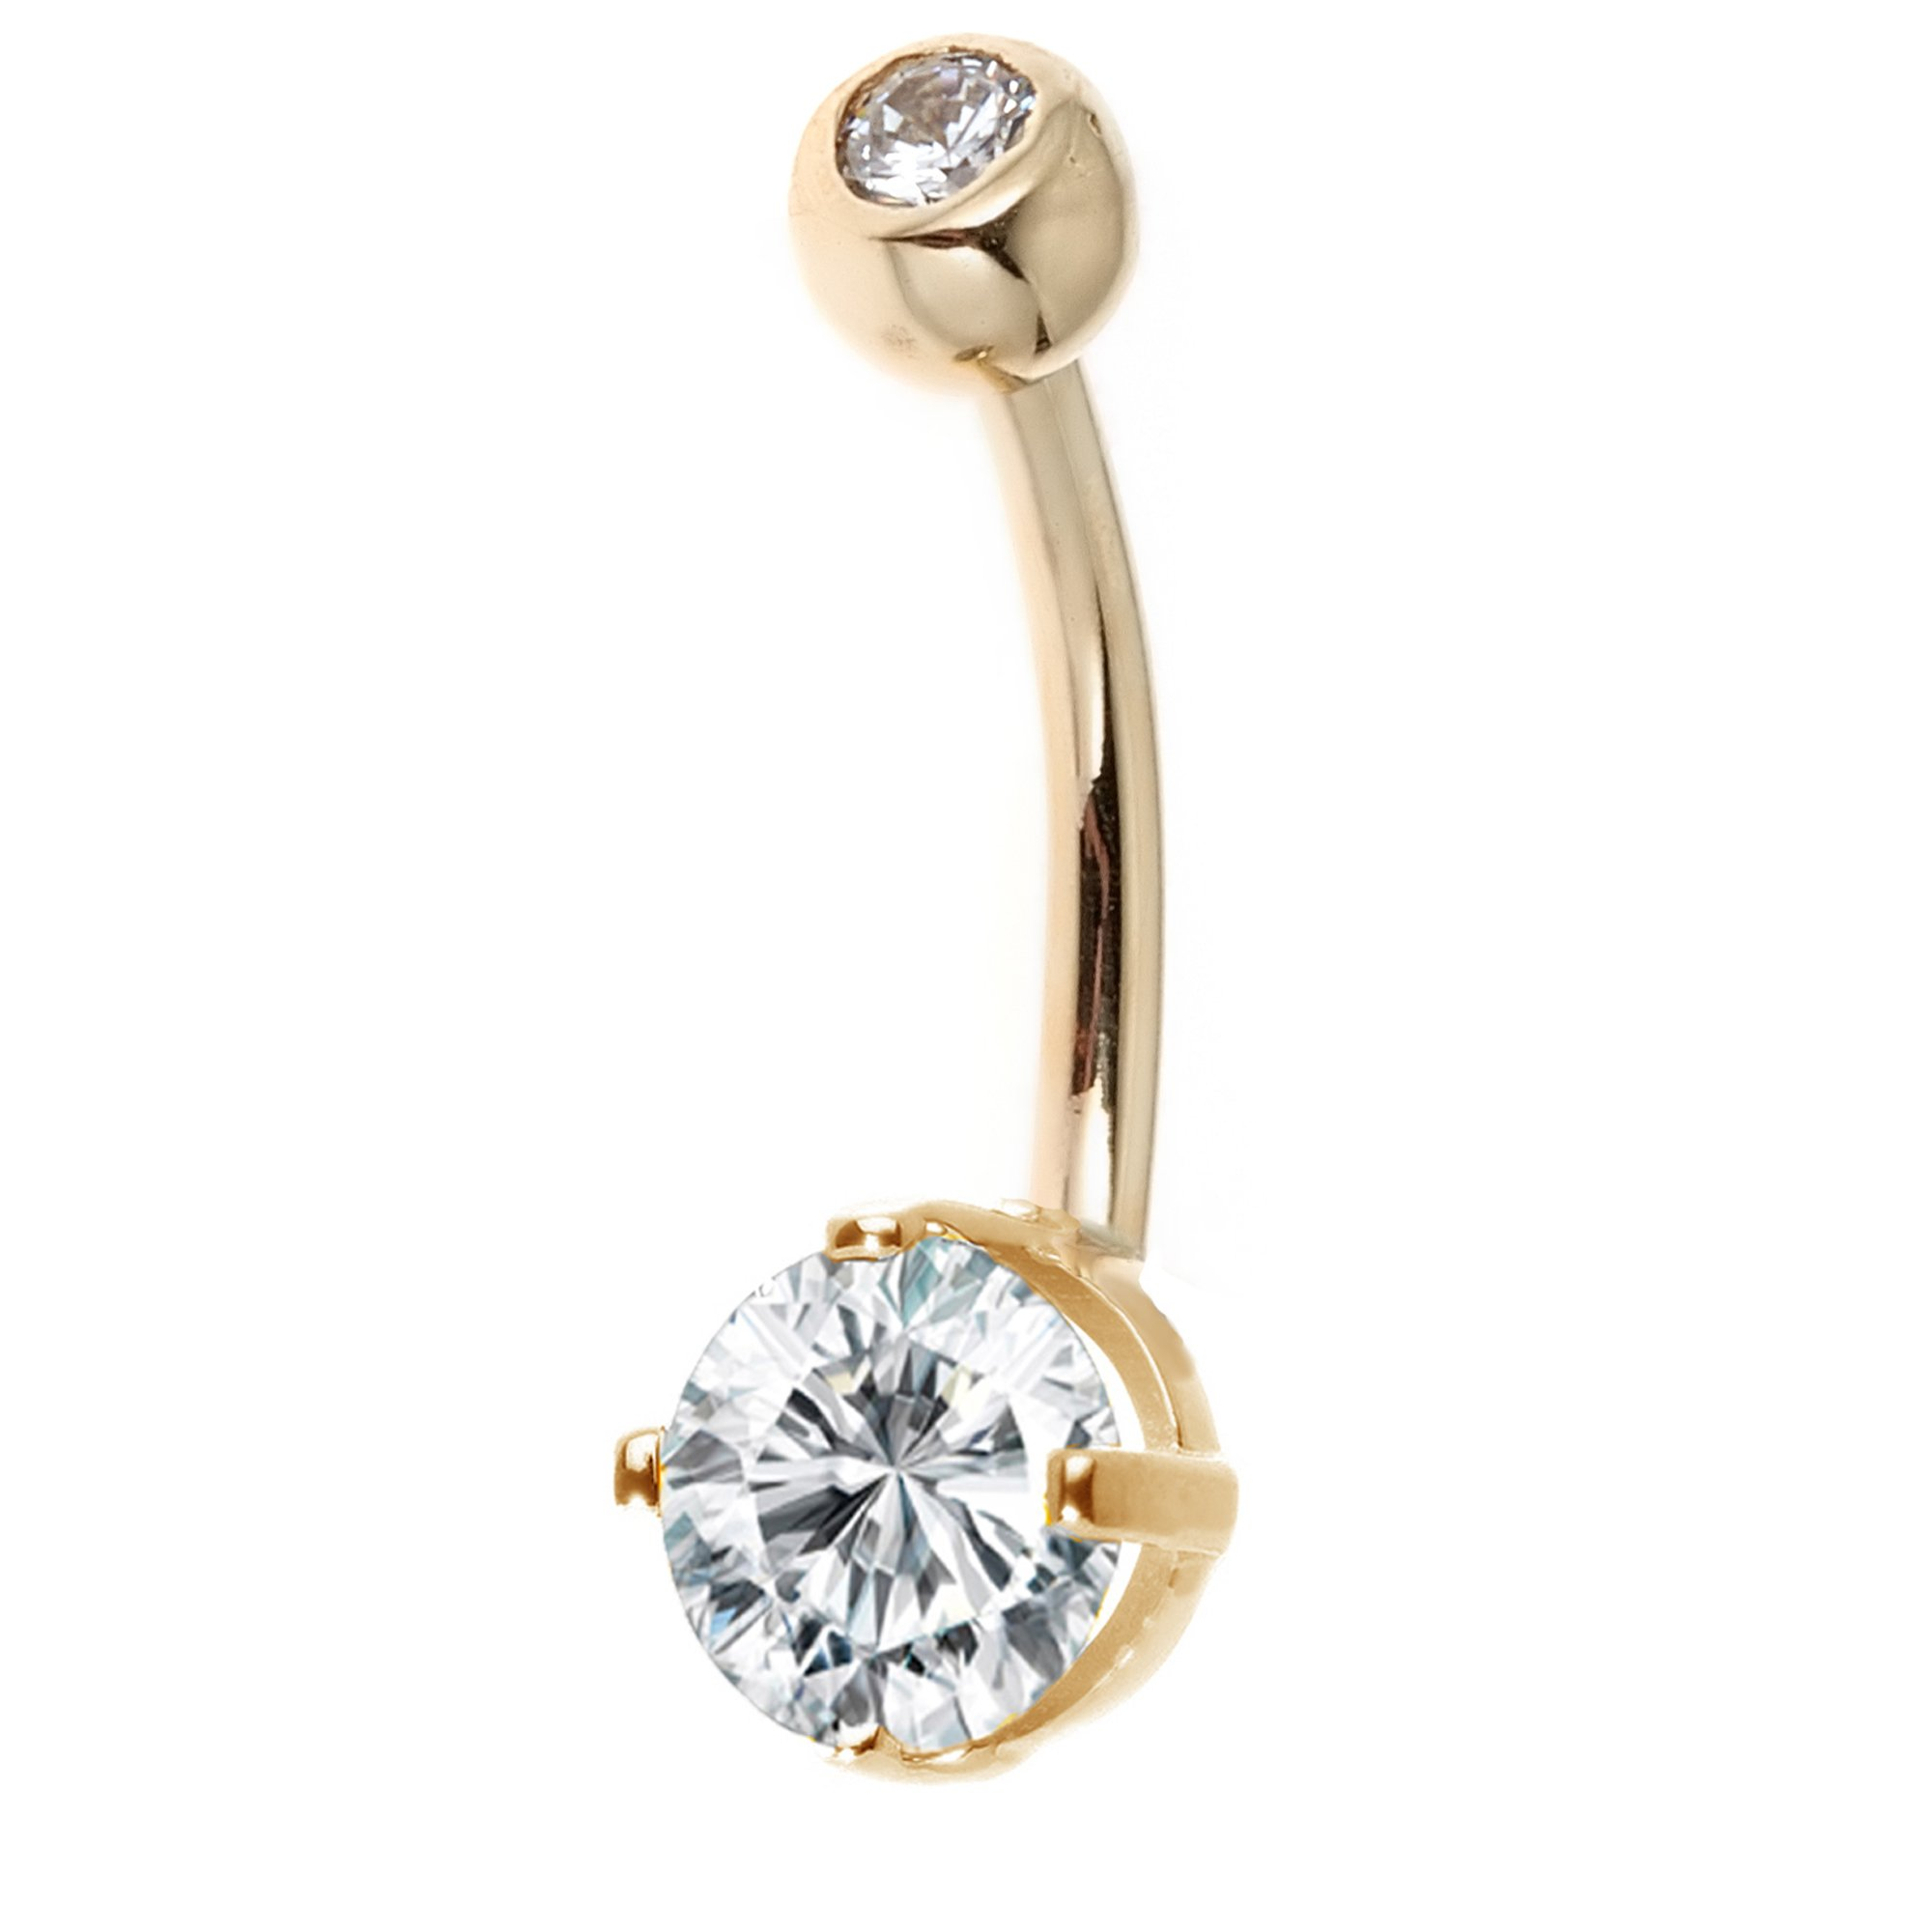 Ritastephens 14k Solid Gold Belly Button Top Bottom Cubic Zirconia Navel Barbell Ring (yellow-gold) by Ritastephens